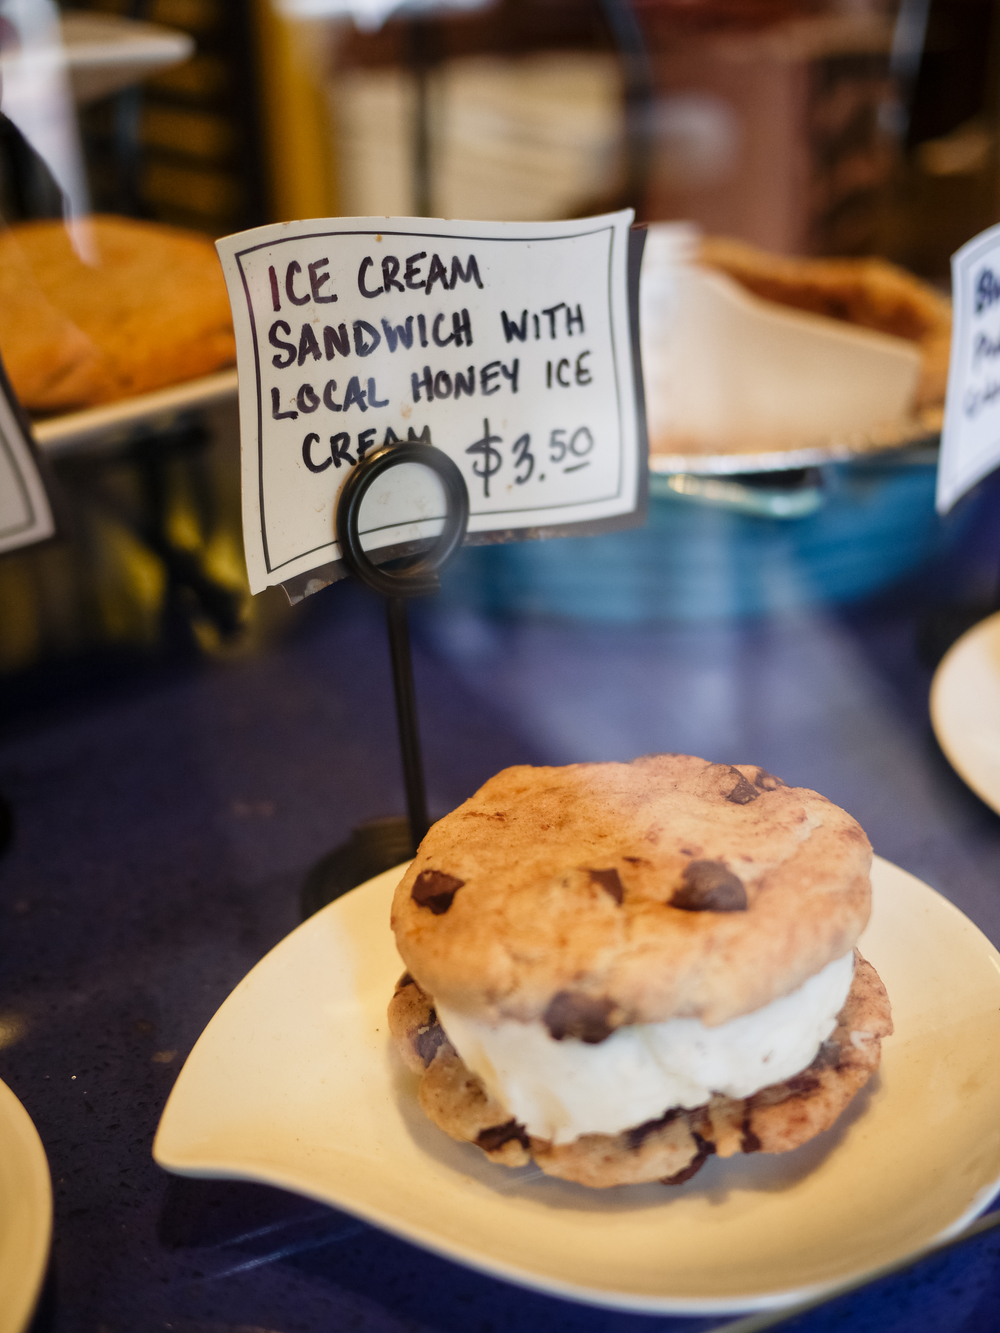 Honey ice cream sandwich.